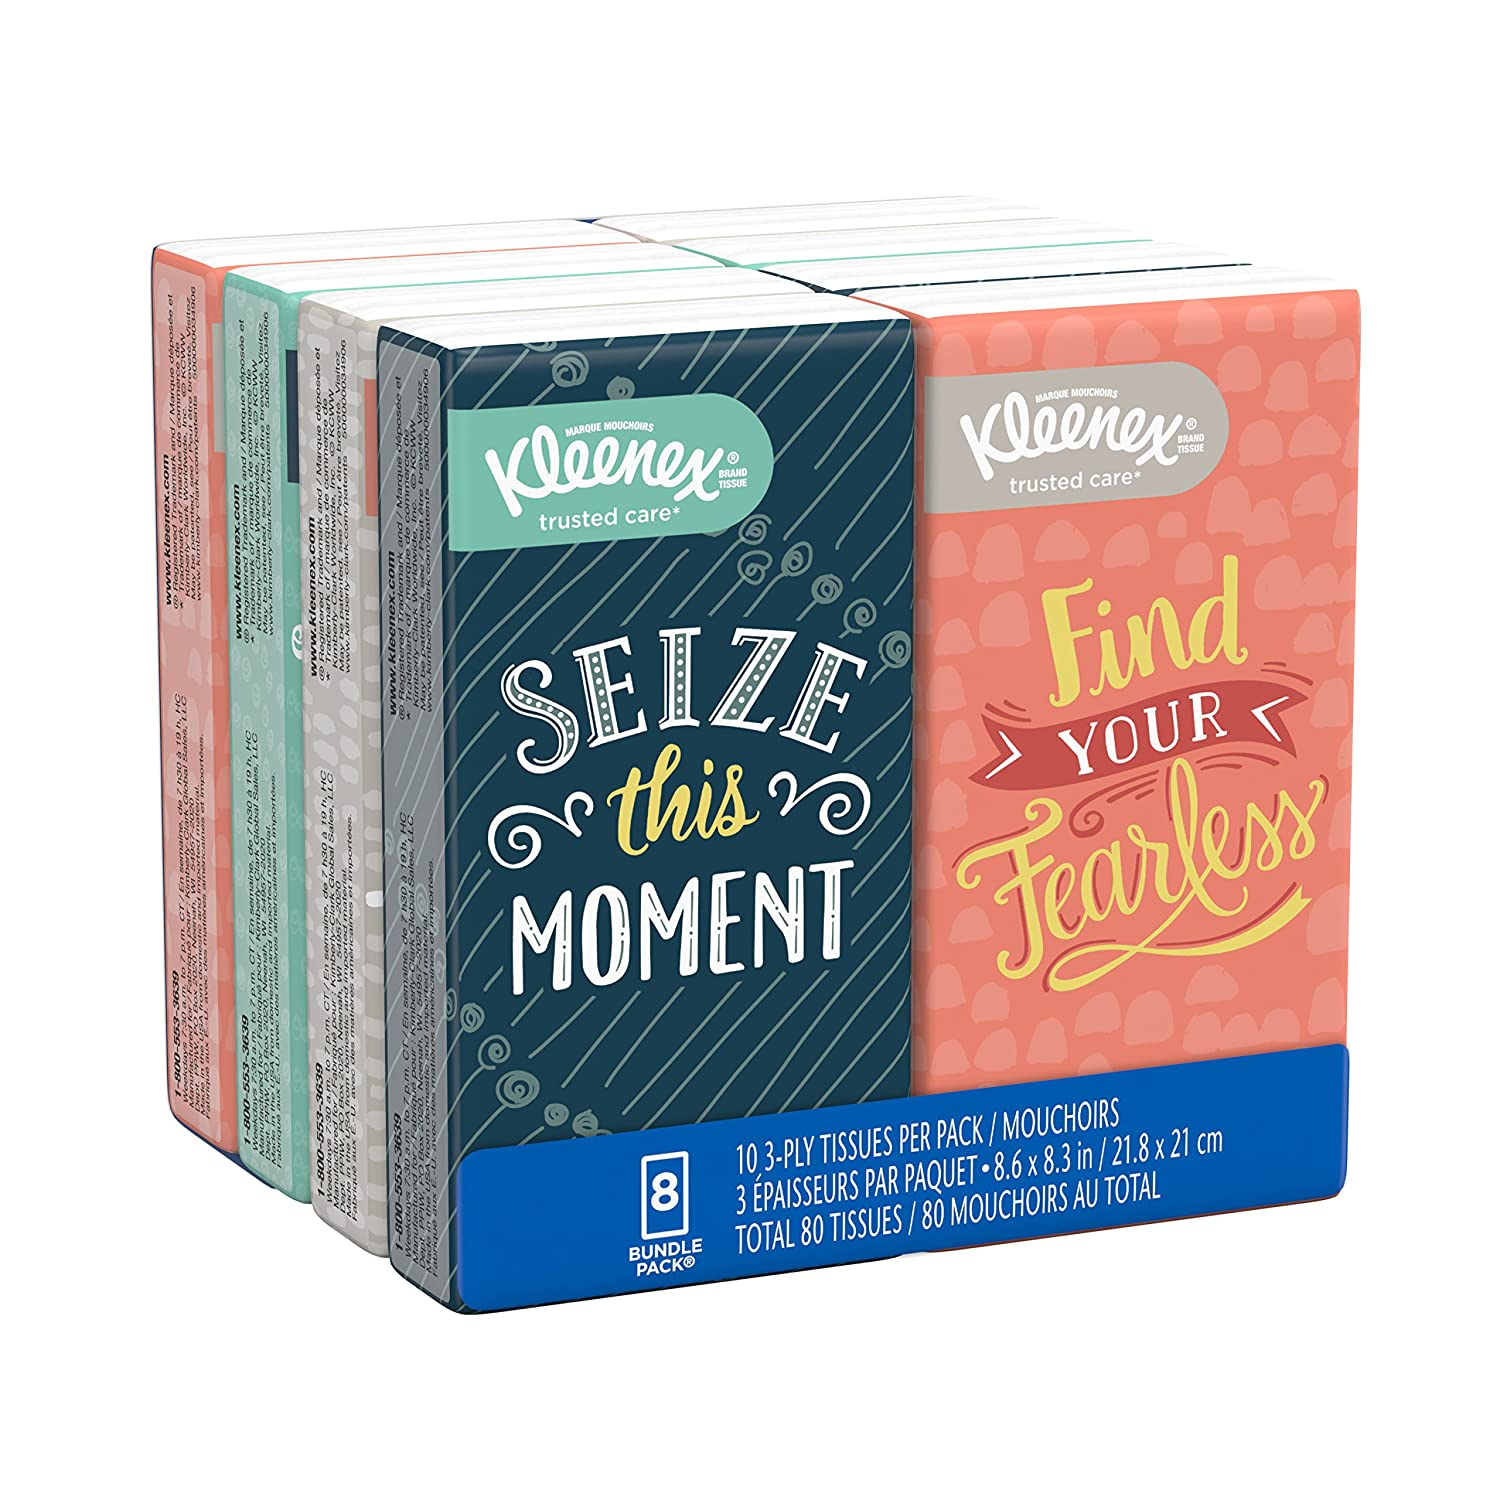 Kleenex Facial Tissues, On The Go Pack, 10 Tissues Per Go Pack, 8 Pack by Kleenex